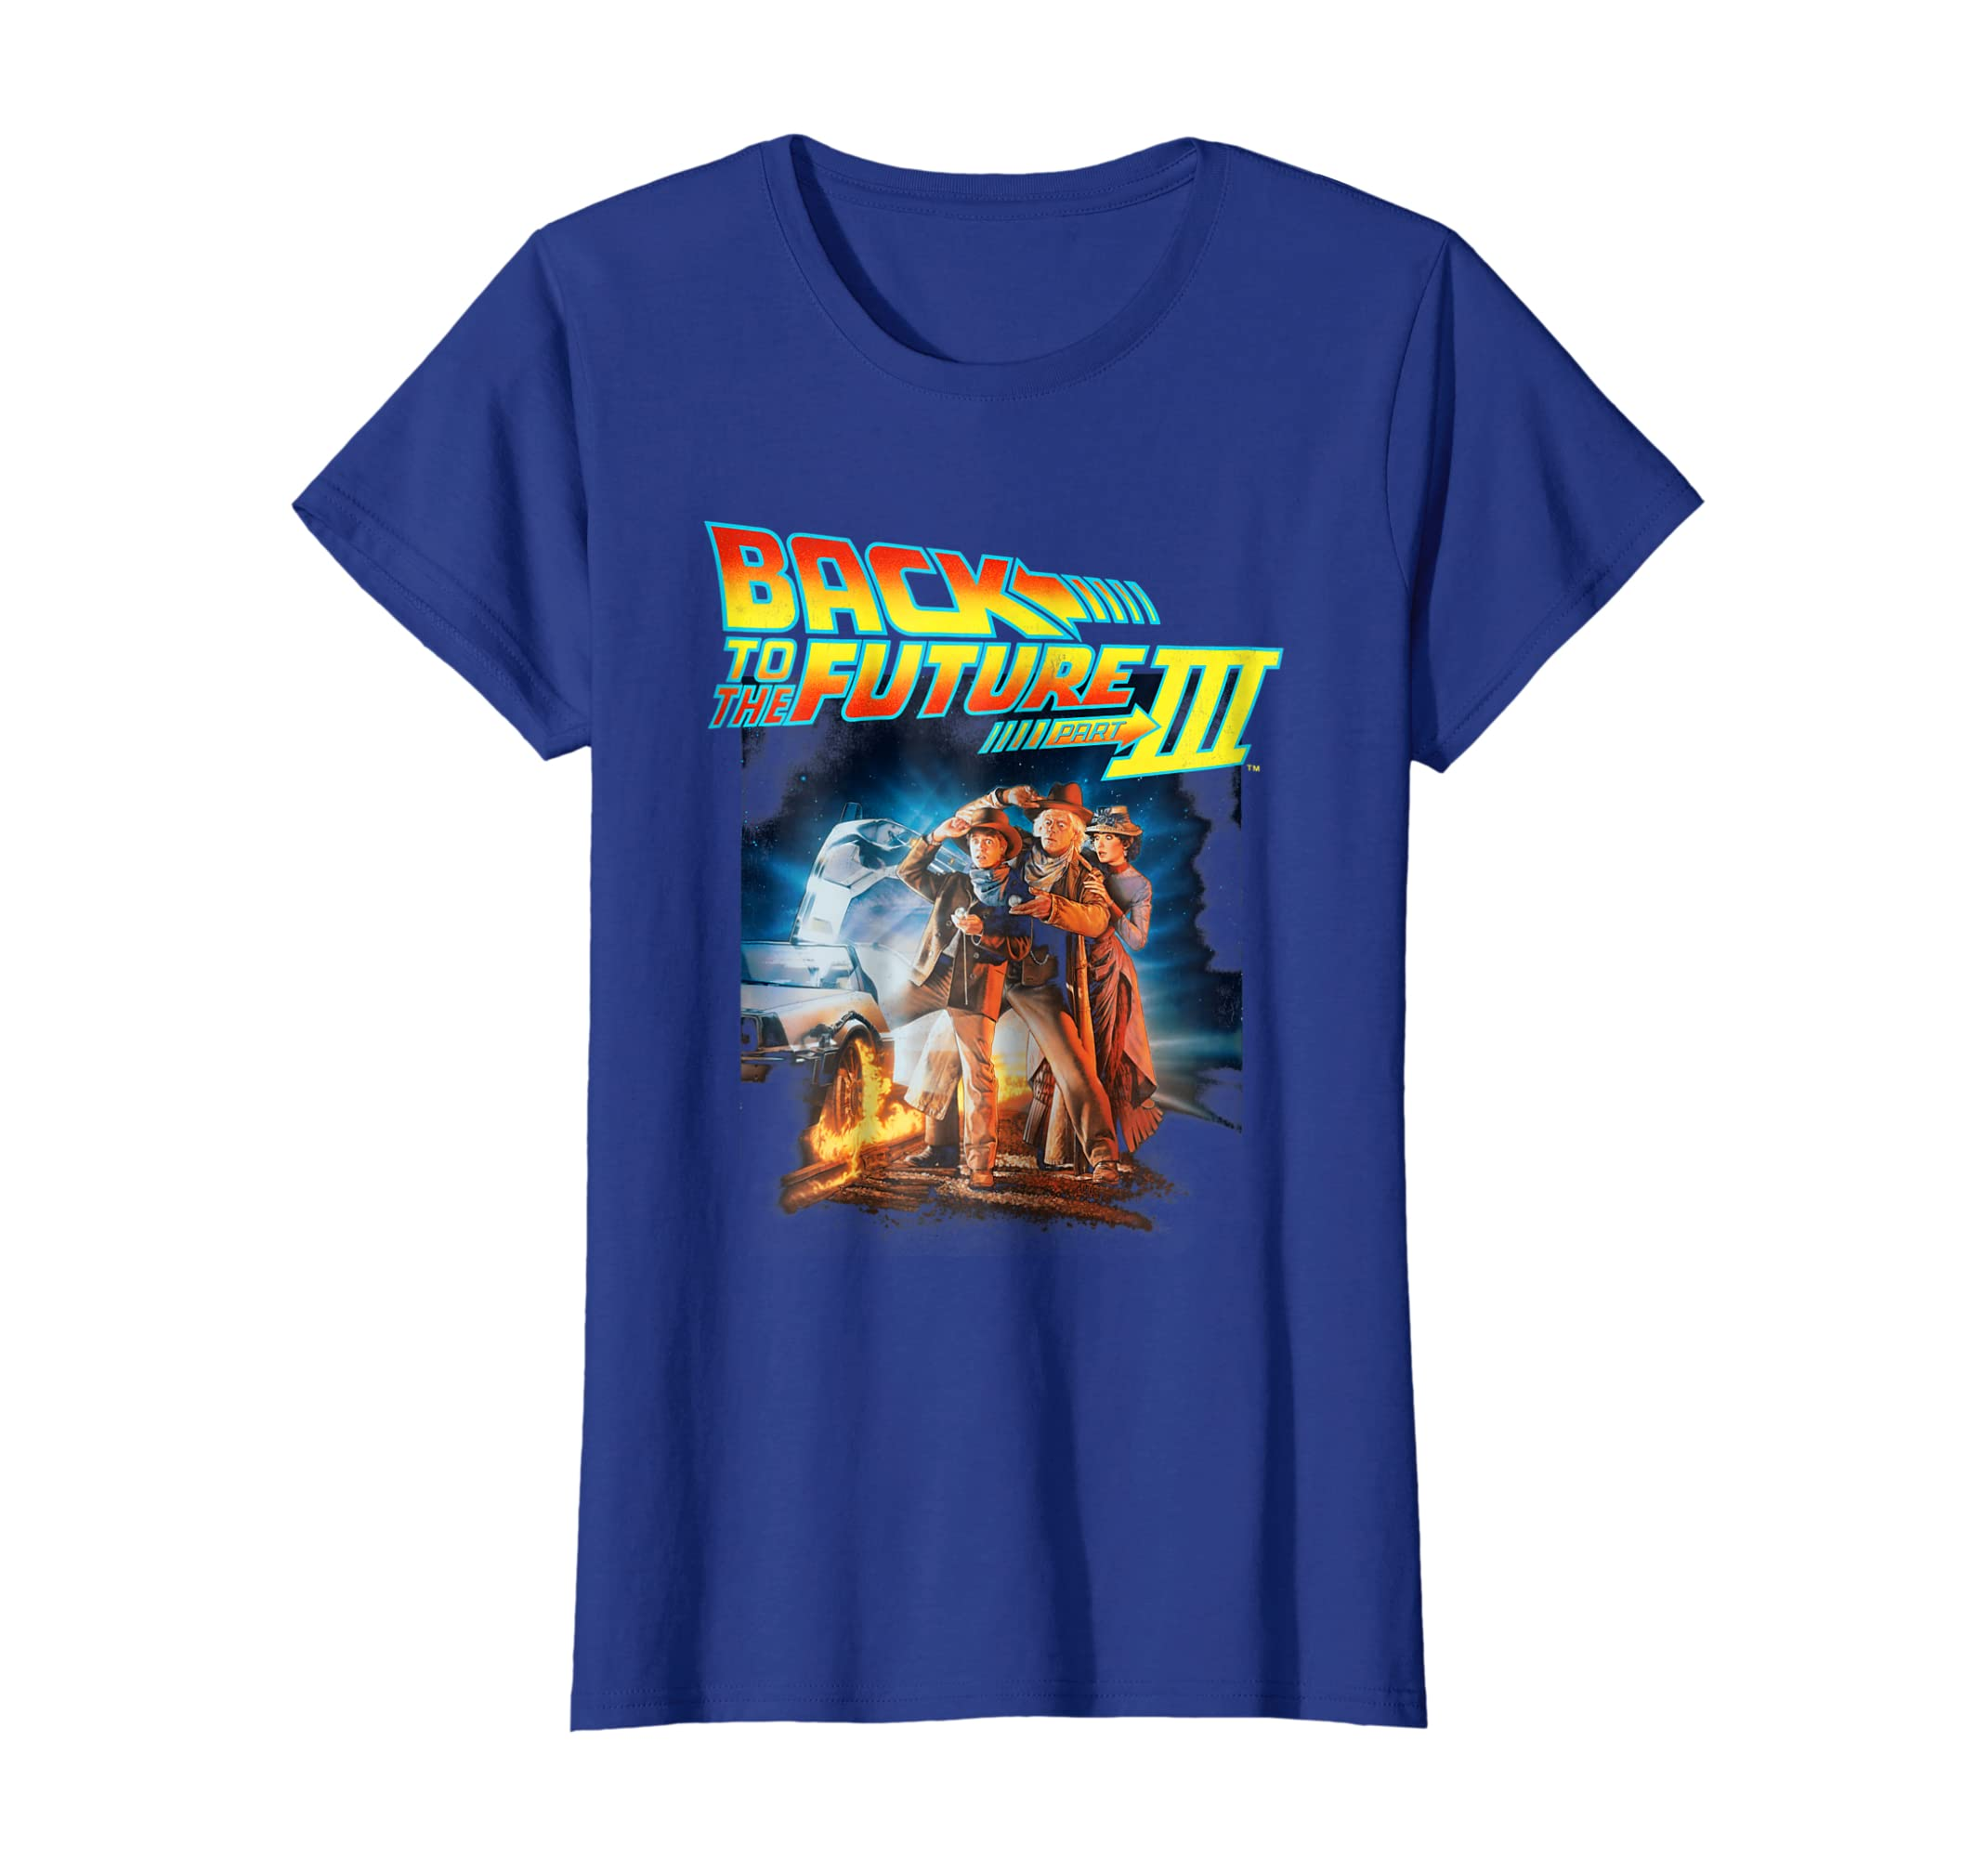 4fe503a95 Amazon.com: Back To the Future Three Movie Poster Graphic T-Shirt: Clothing